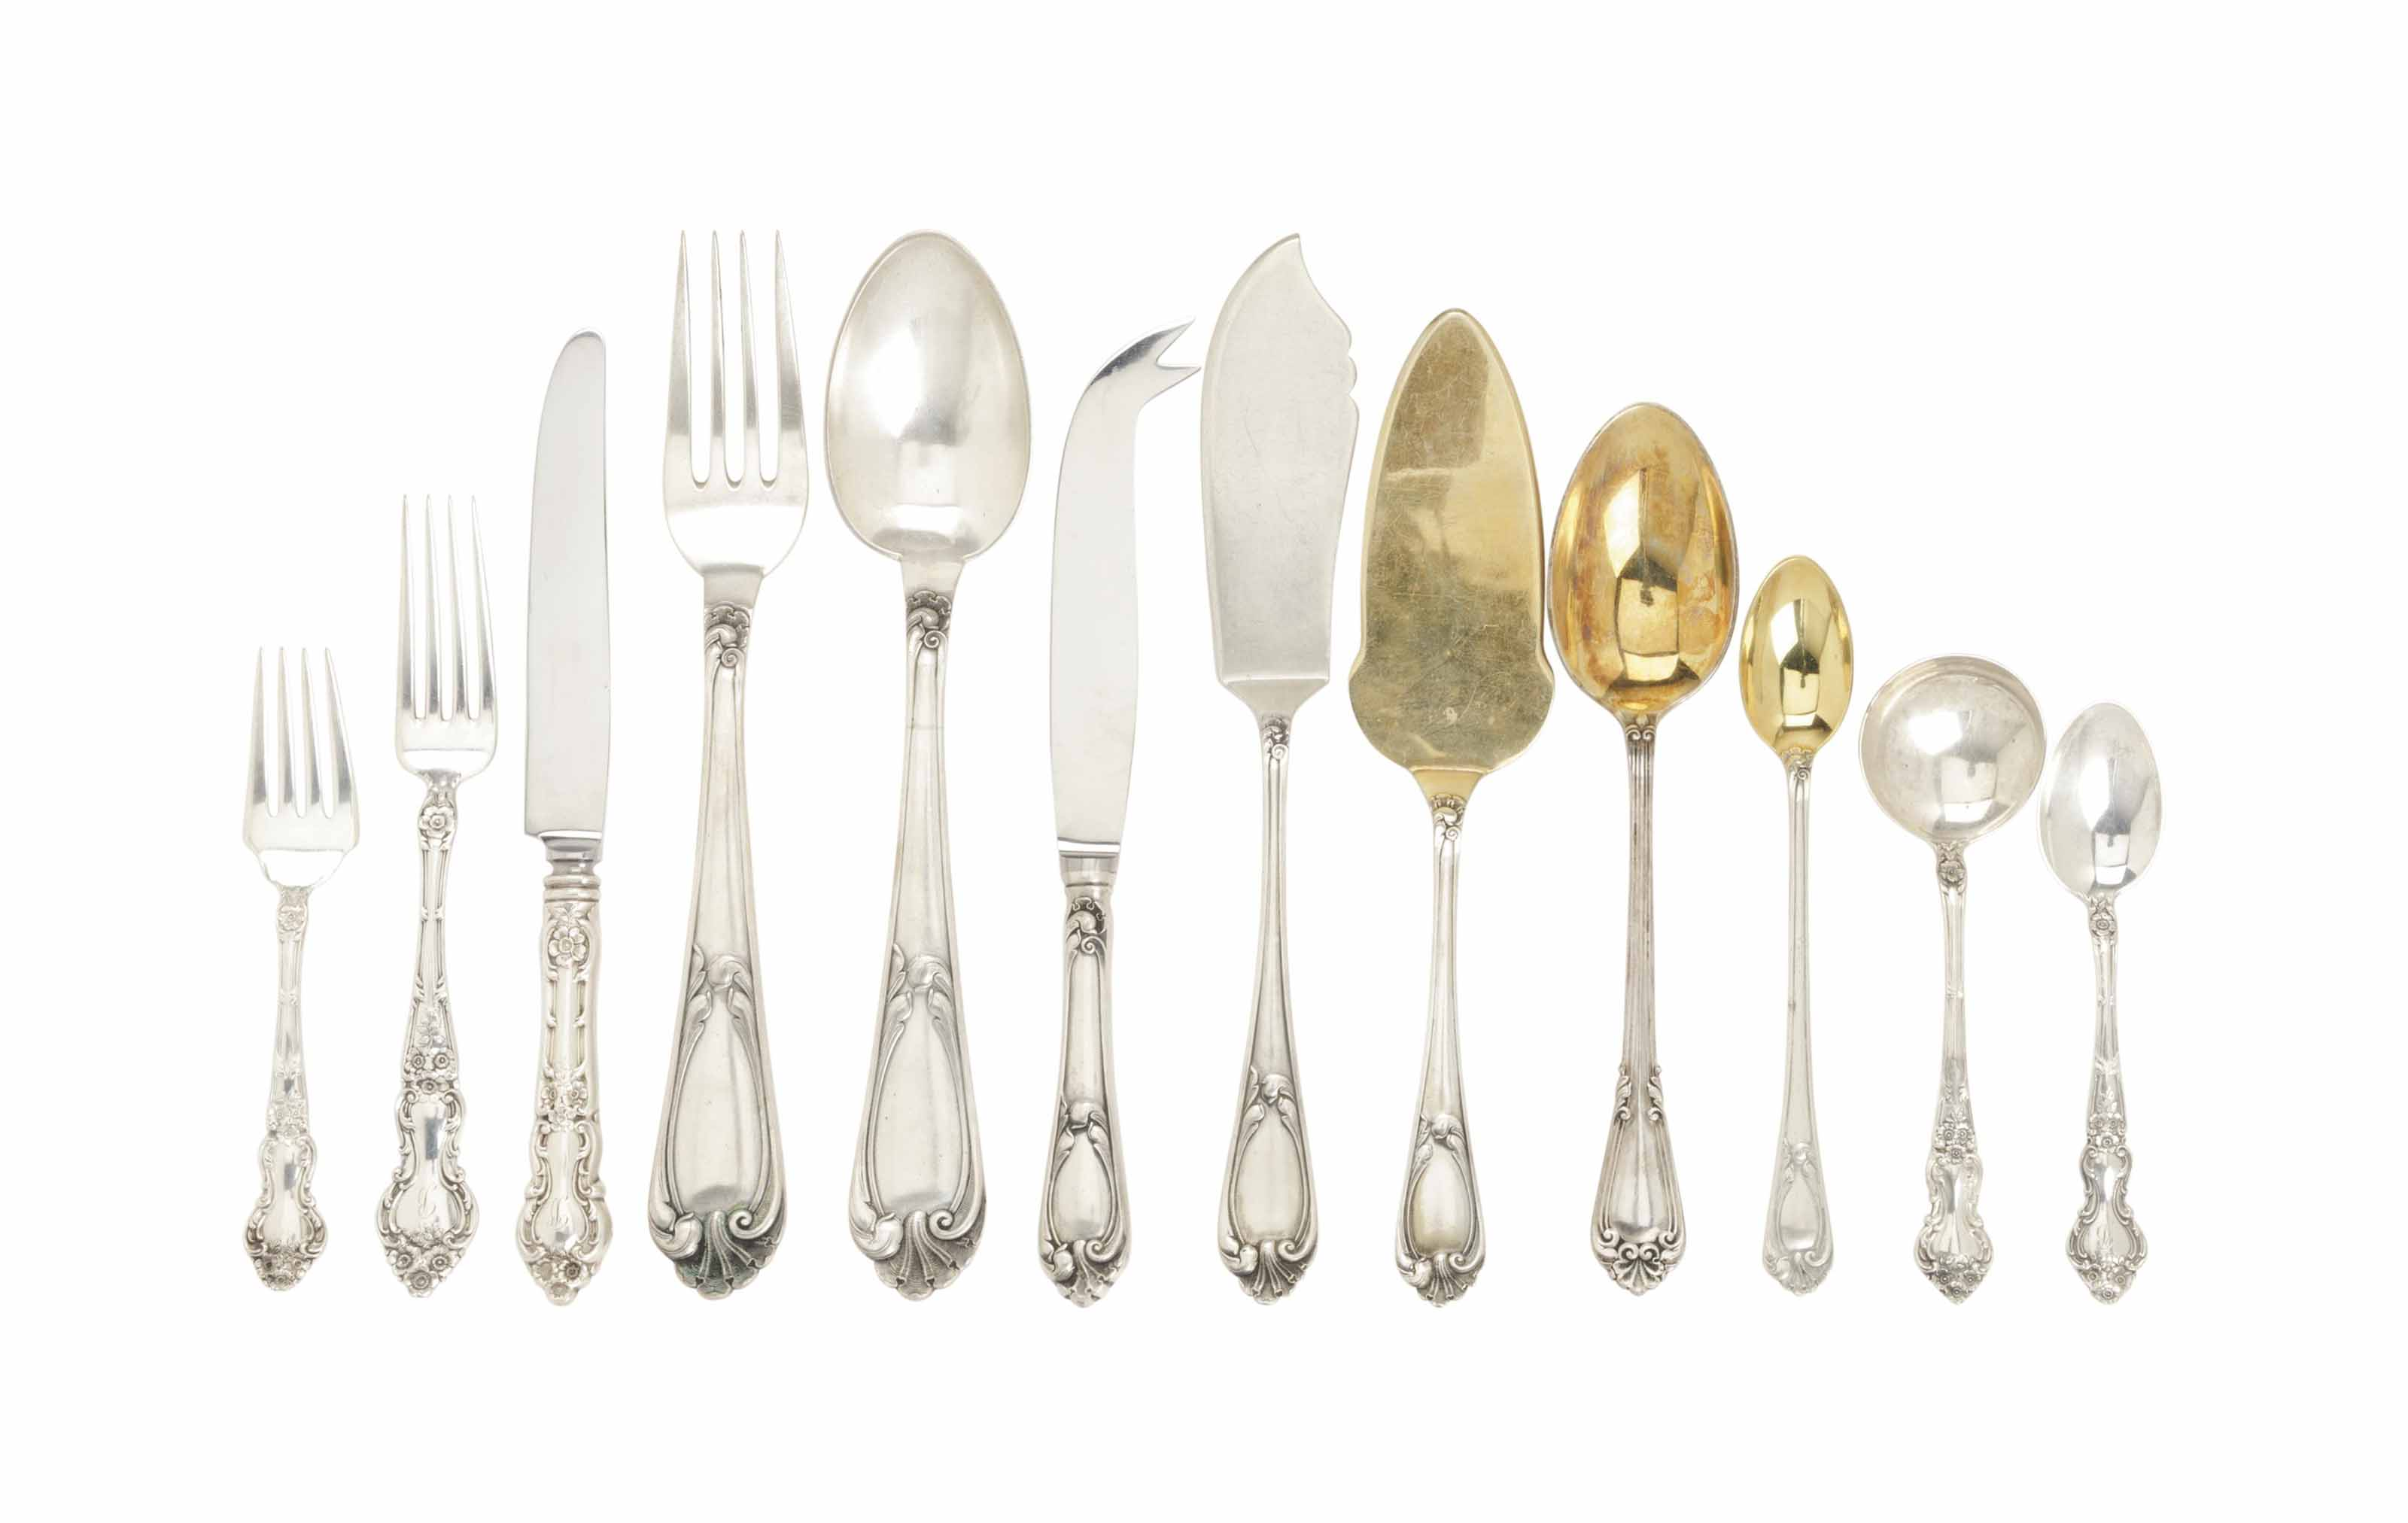 AN ASSEMBLED AMERICAN AND PORTUGUESE SILVER PART FLATWARE SERVICE,